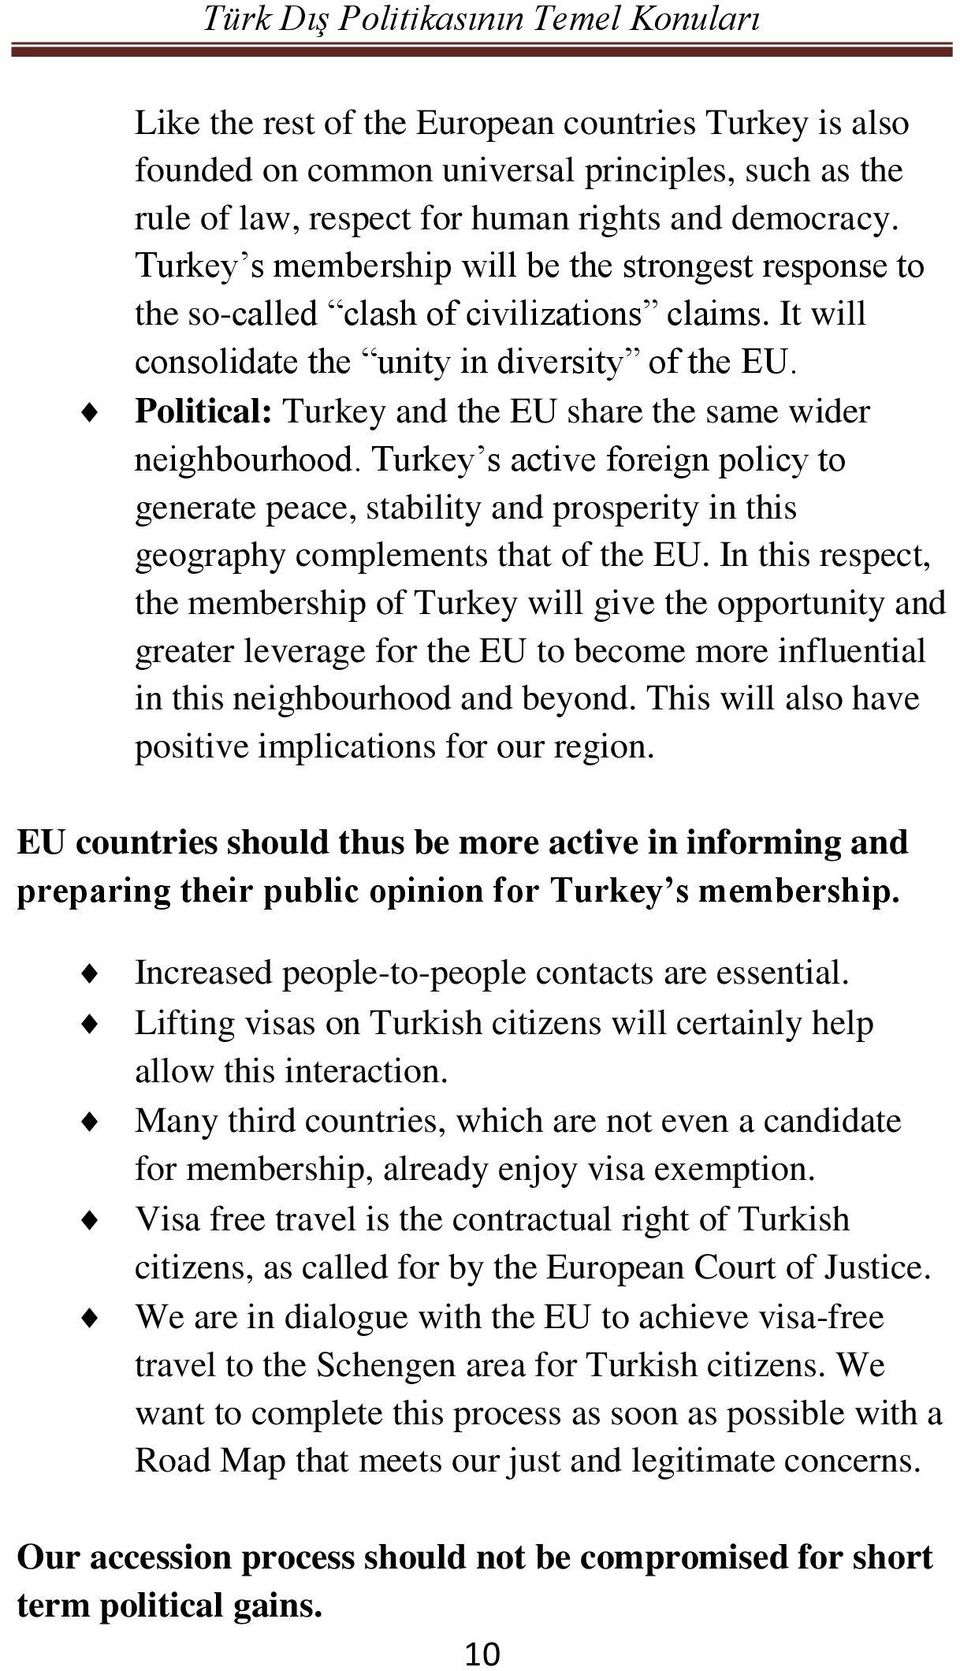 Political: Turkey and the EU share the same wider neighbourhood. Turkey s active foreign policy to generate peace, stability and prosperity in this geography complements that of the EU.